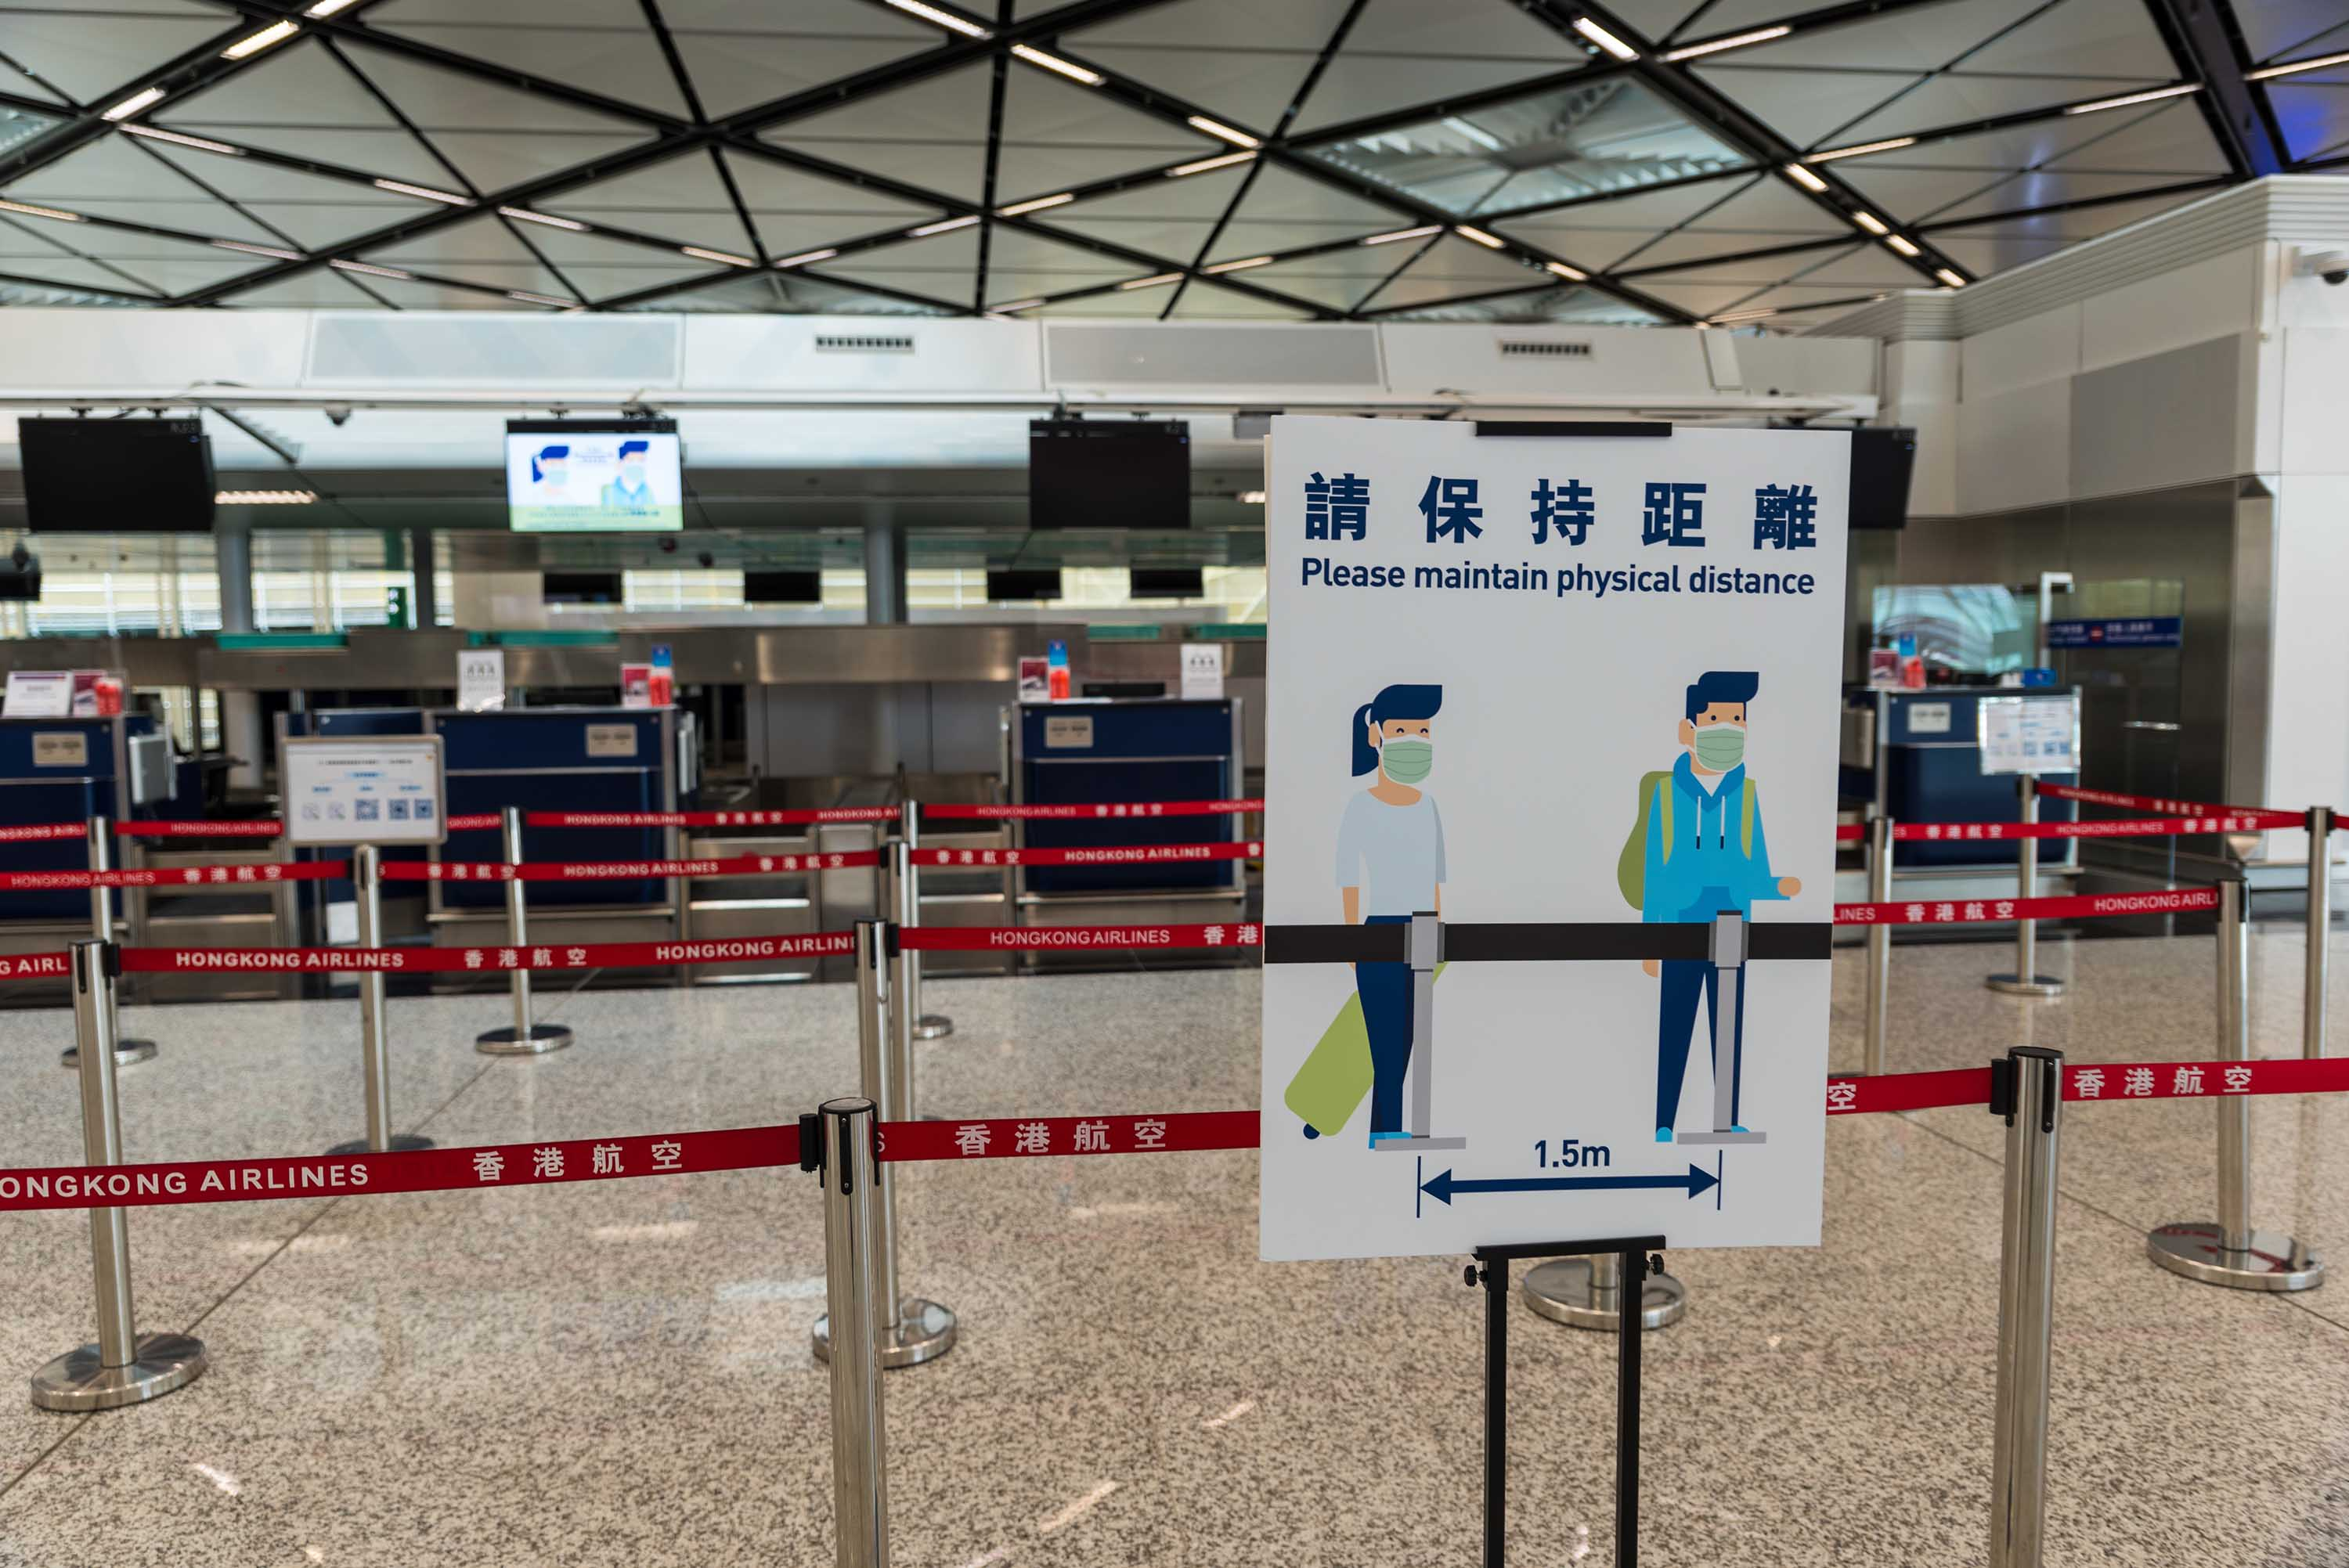 Social distancing guidance is posted on a sign in the check-in area at Hong Kong International Airport on September 4.